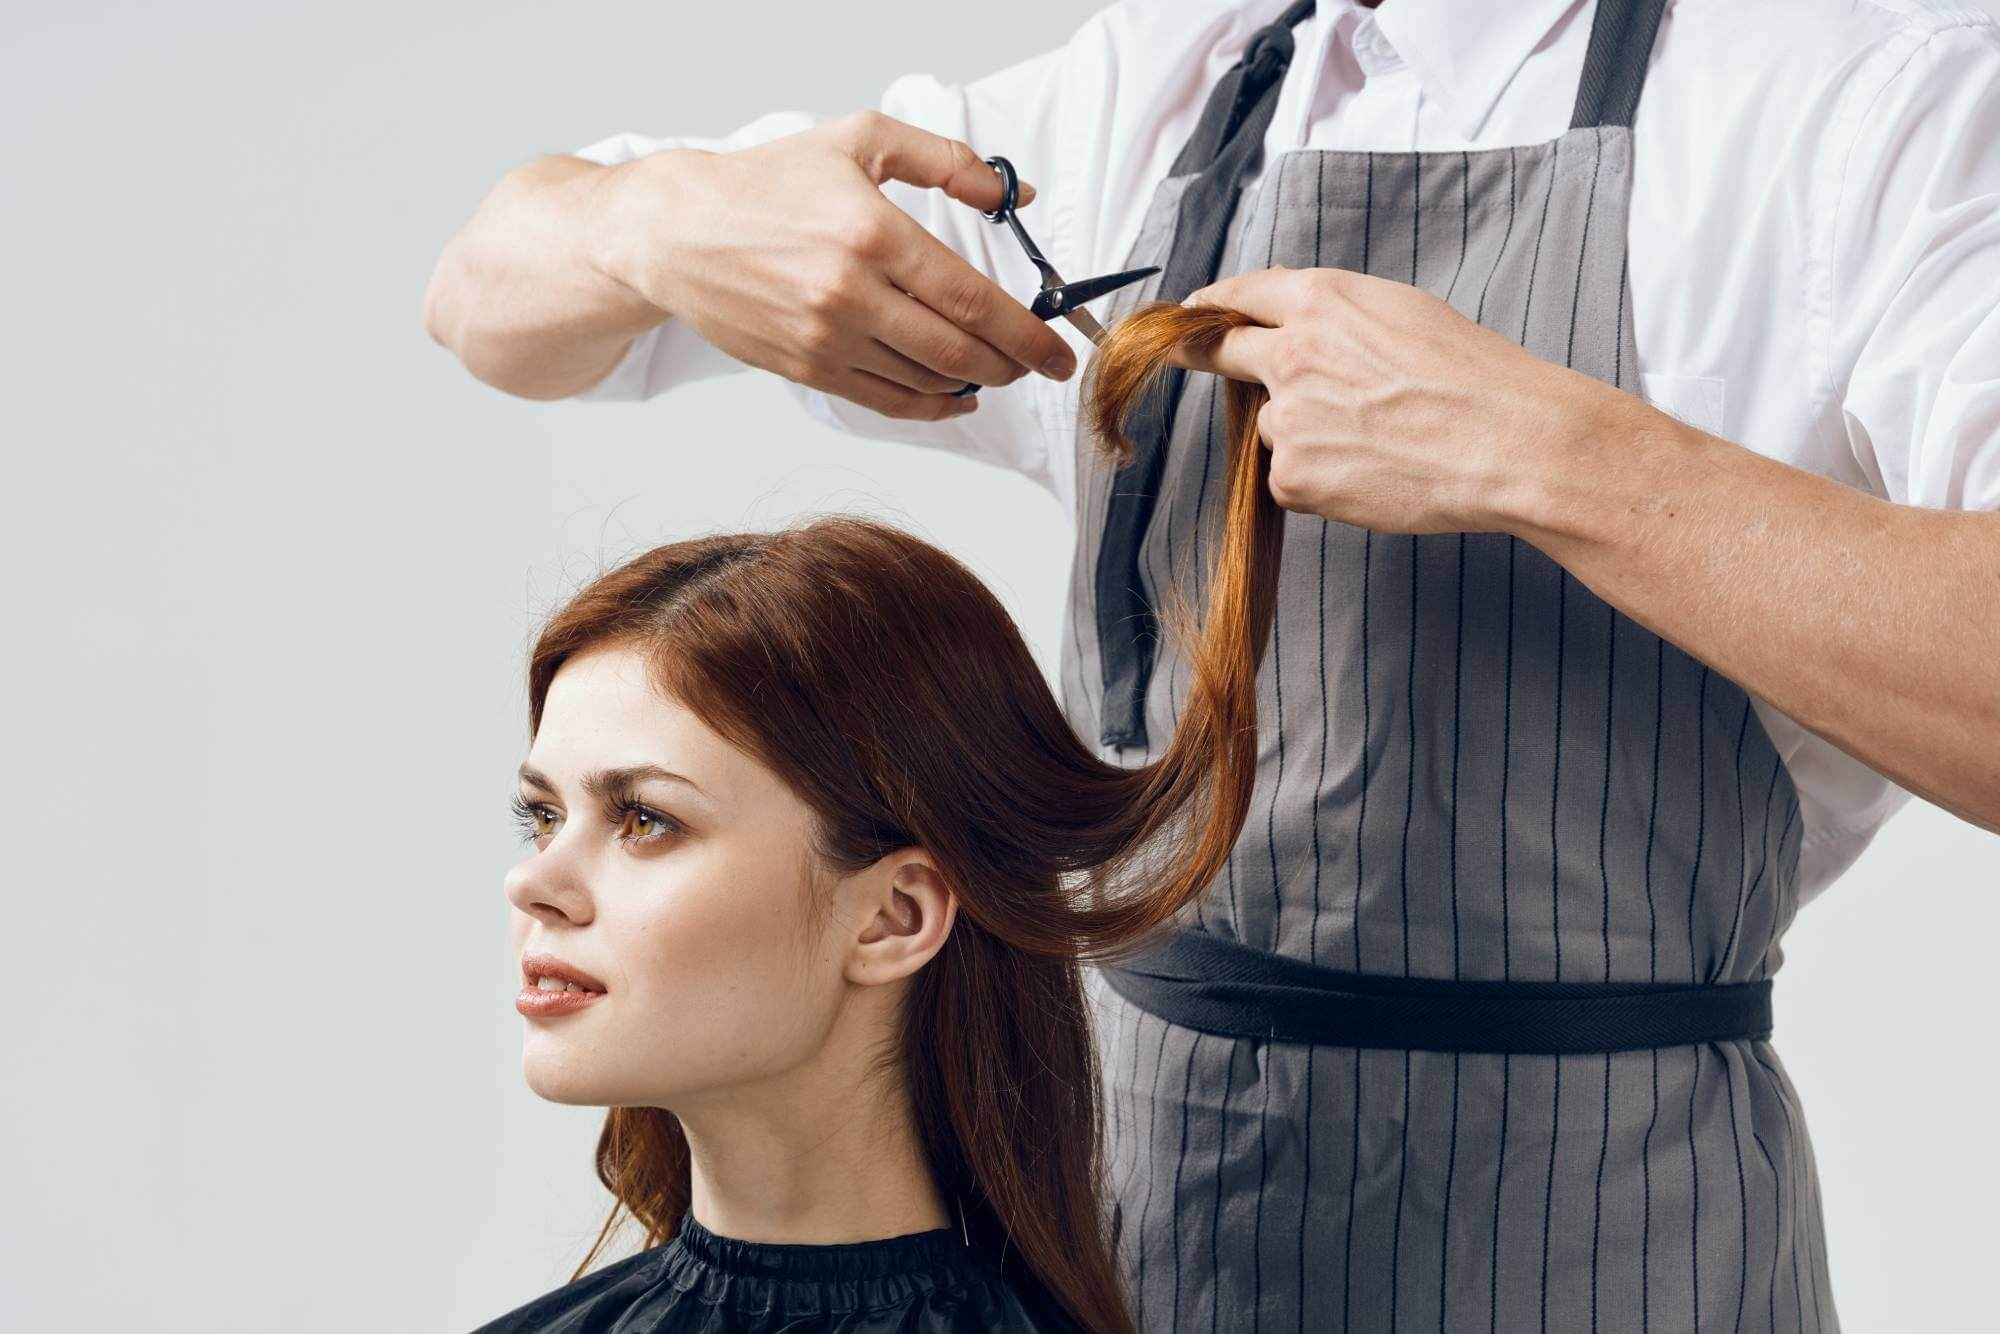 Haircuts for Women Who Suffer From Hair Loss